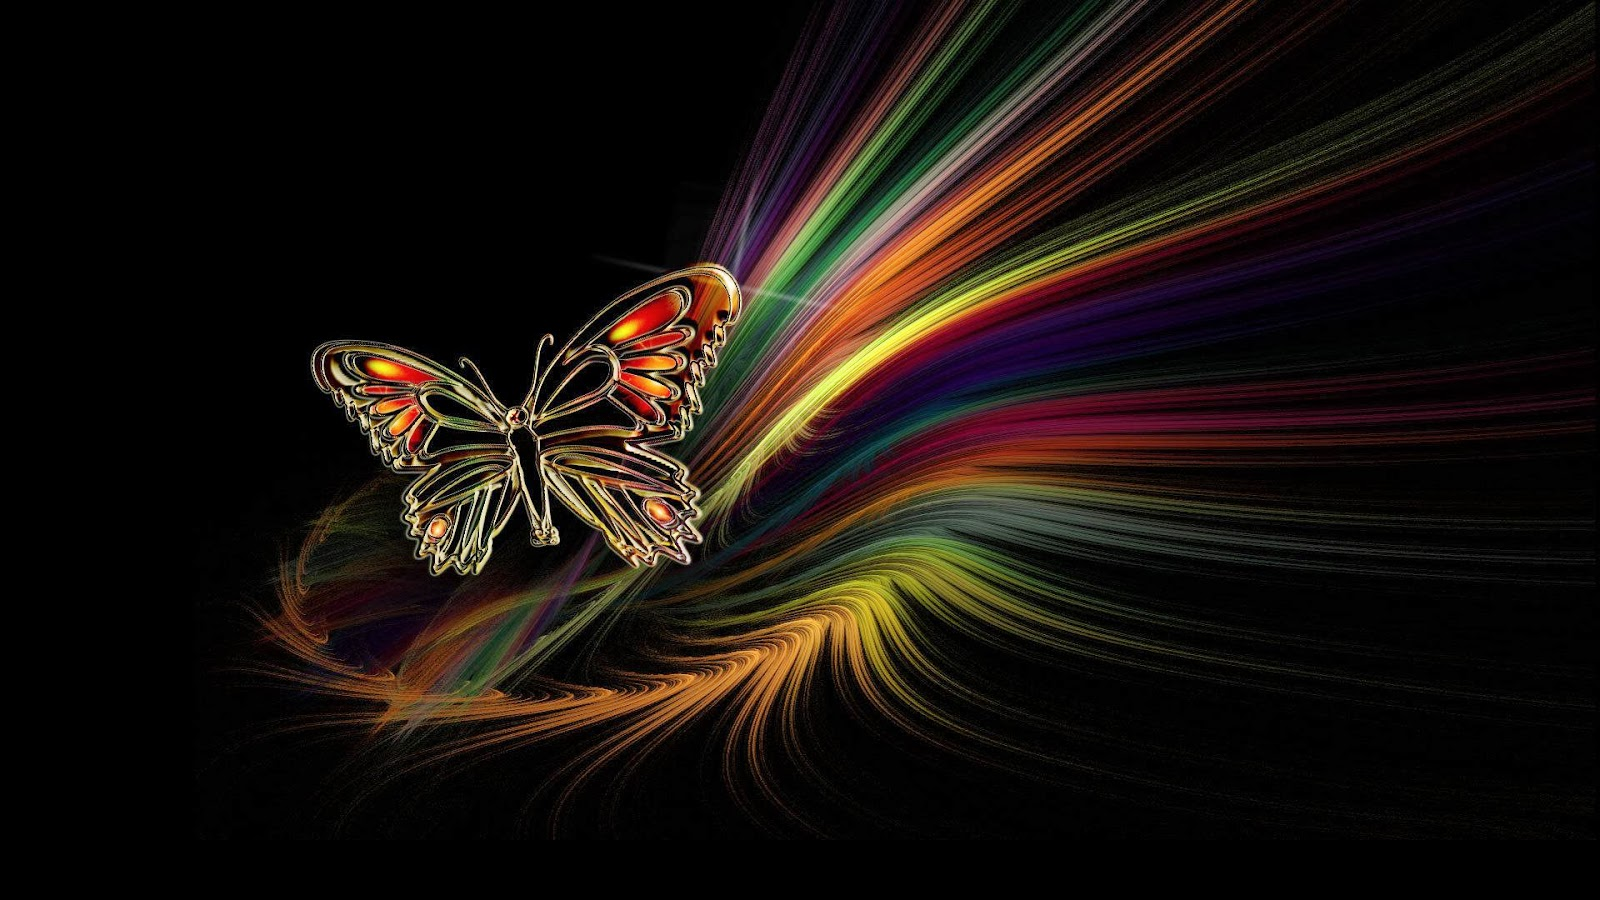 Butterfly 3d Live Wallpaper Free Download Wallpaper Picture Image Islamic Information English And